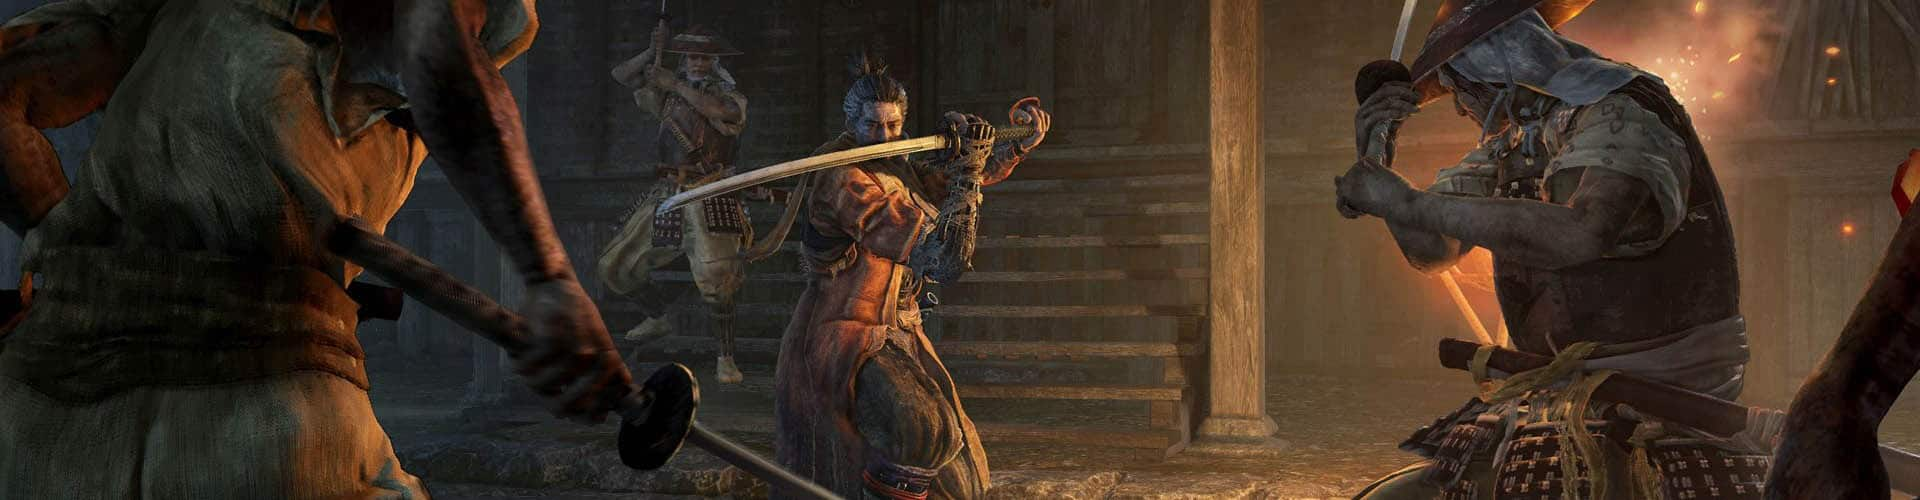 Sekiro: Shadows Die Twice Release Date, Trailer, News and Rumors